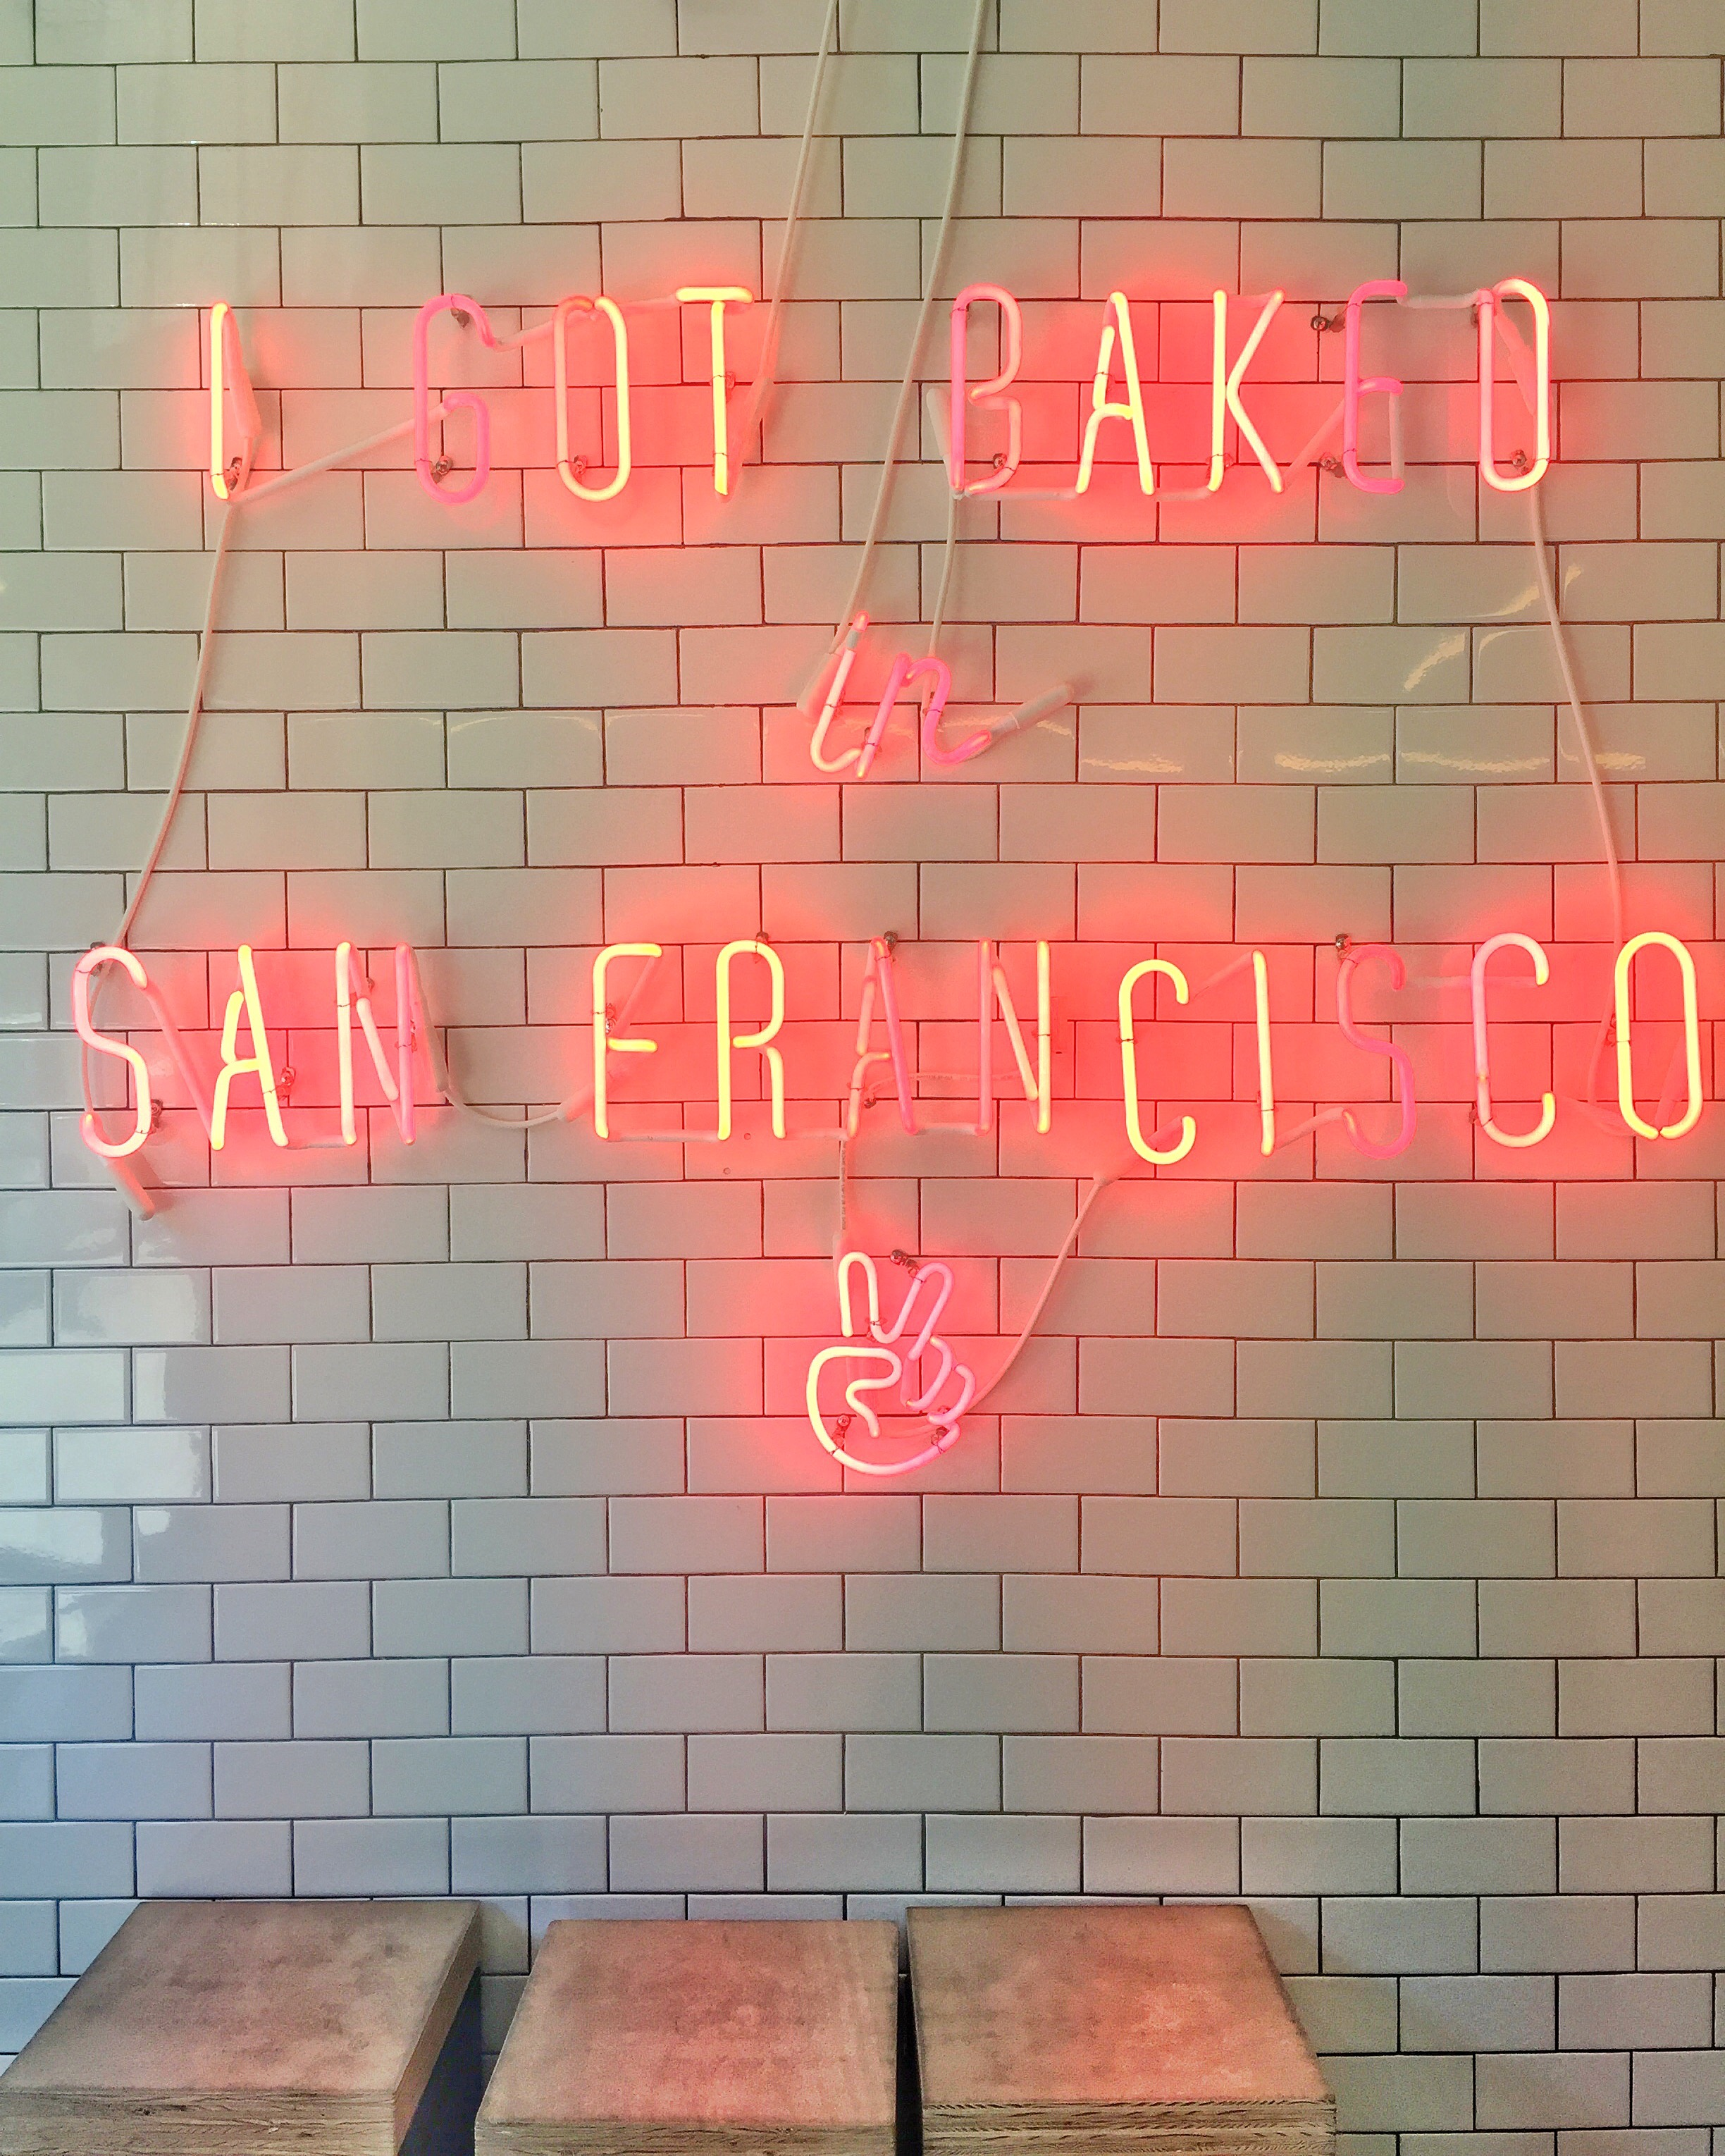 sanfrancisco,bakery,mrholmesbakehouse,holmessweetholmes,delicious,bakehouse,sanfrancisco,streets,city,citylife,buildings,blogger,lasvegasblogger